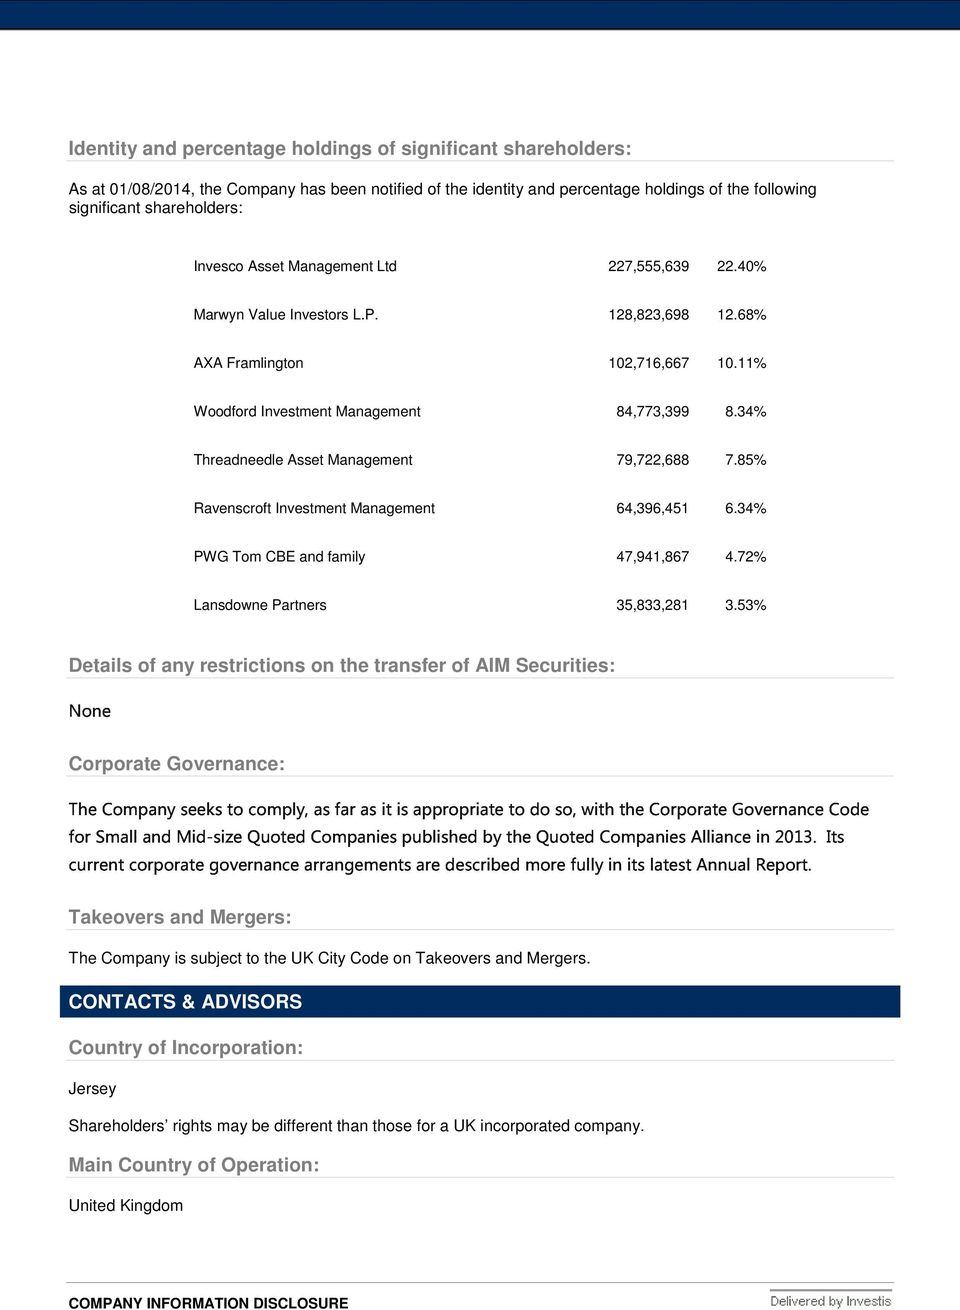 34% Threadneedle Asset Management 79,722,688 7.85% Ravenscroft Investment Management 64,396,451 6.34% PWG Tom CBE and family 47,941,867 4.72% None Lansdowne Partners 35,833,281 3.